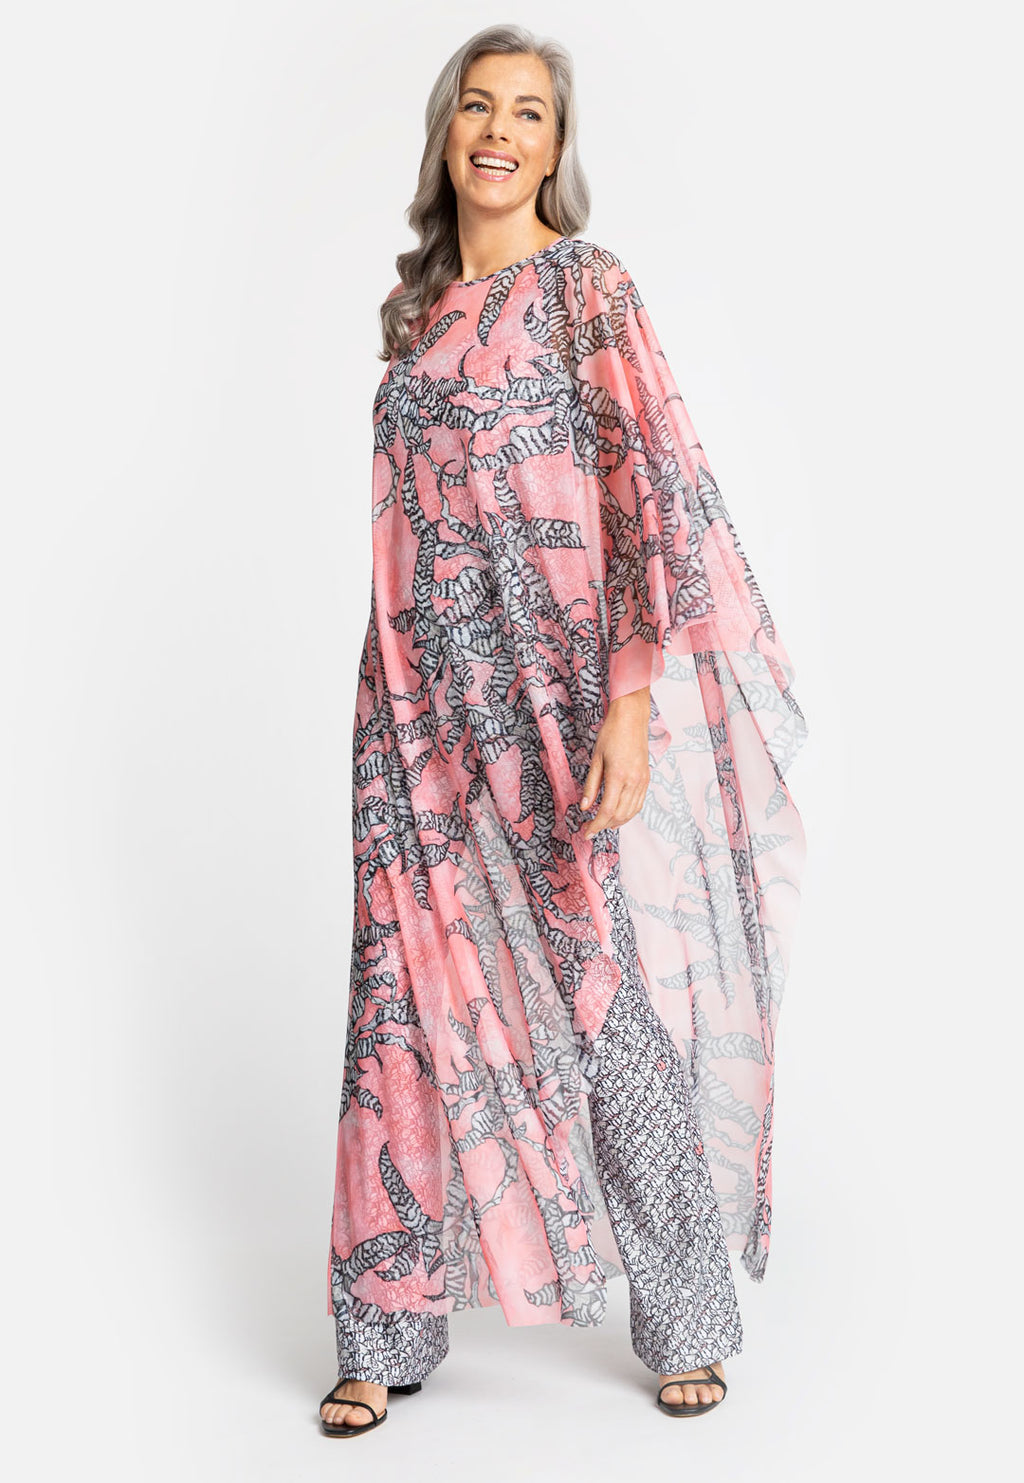 Model in long pink printed poncho with one sleeve and black and white printed dress underneath